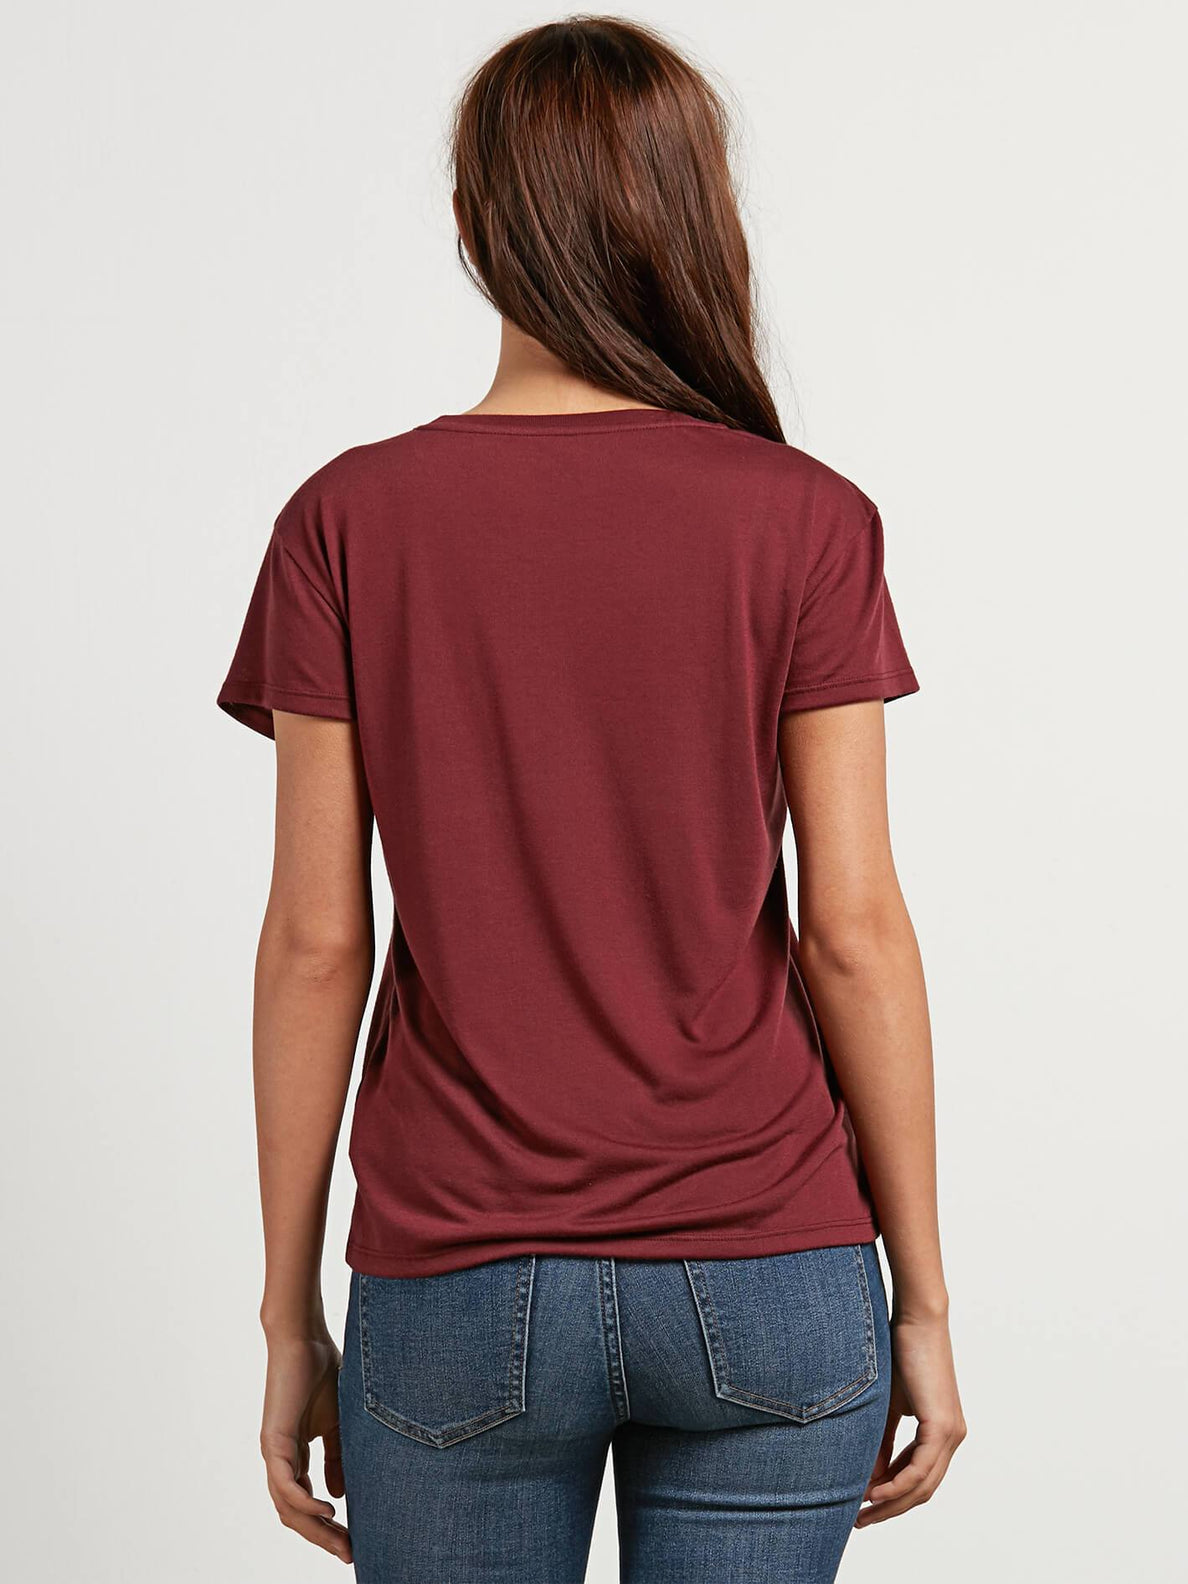 Easy Babe Rad 2 T-Shirt - Burgundy